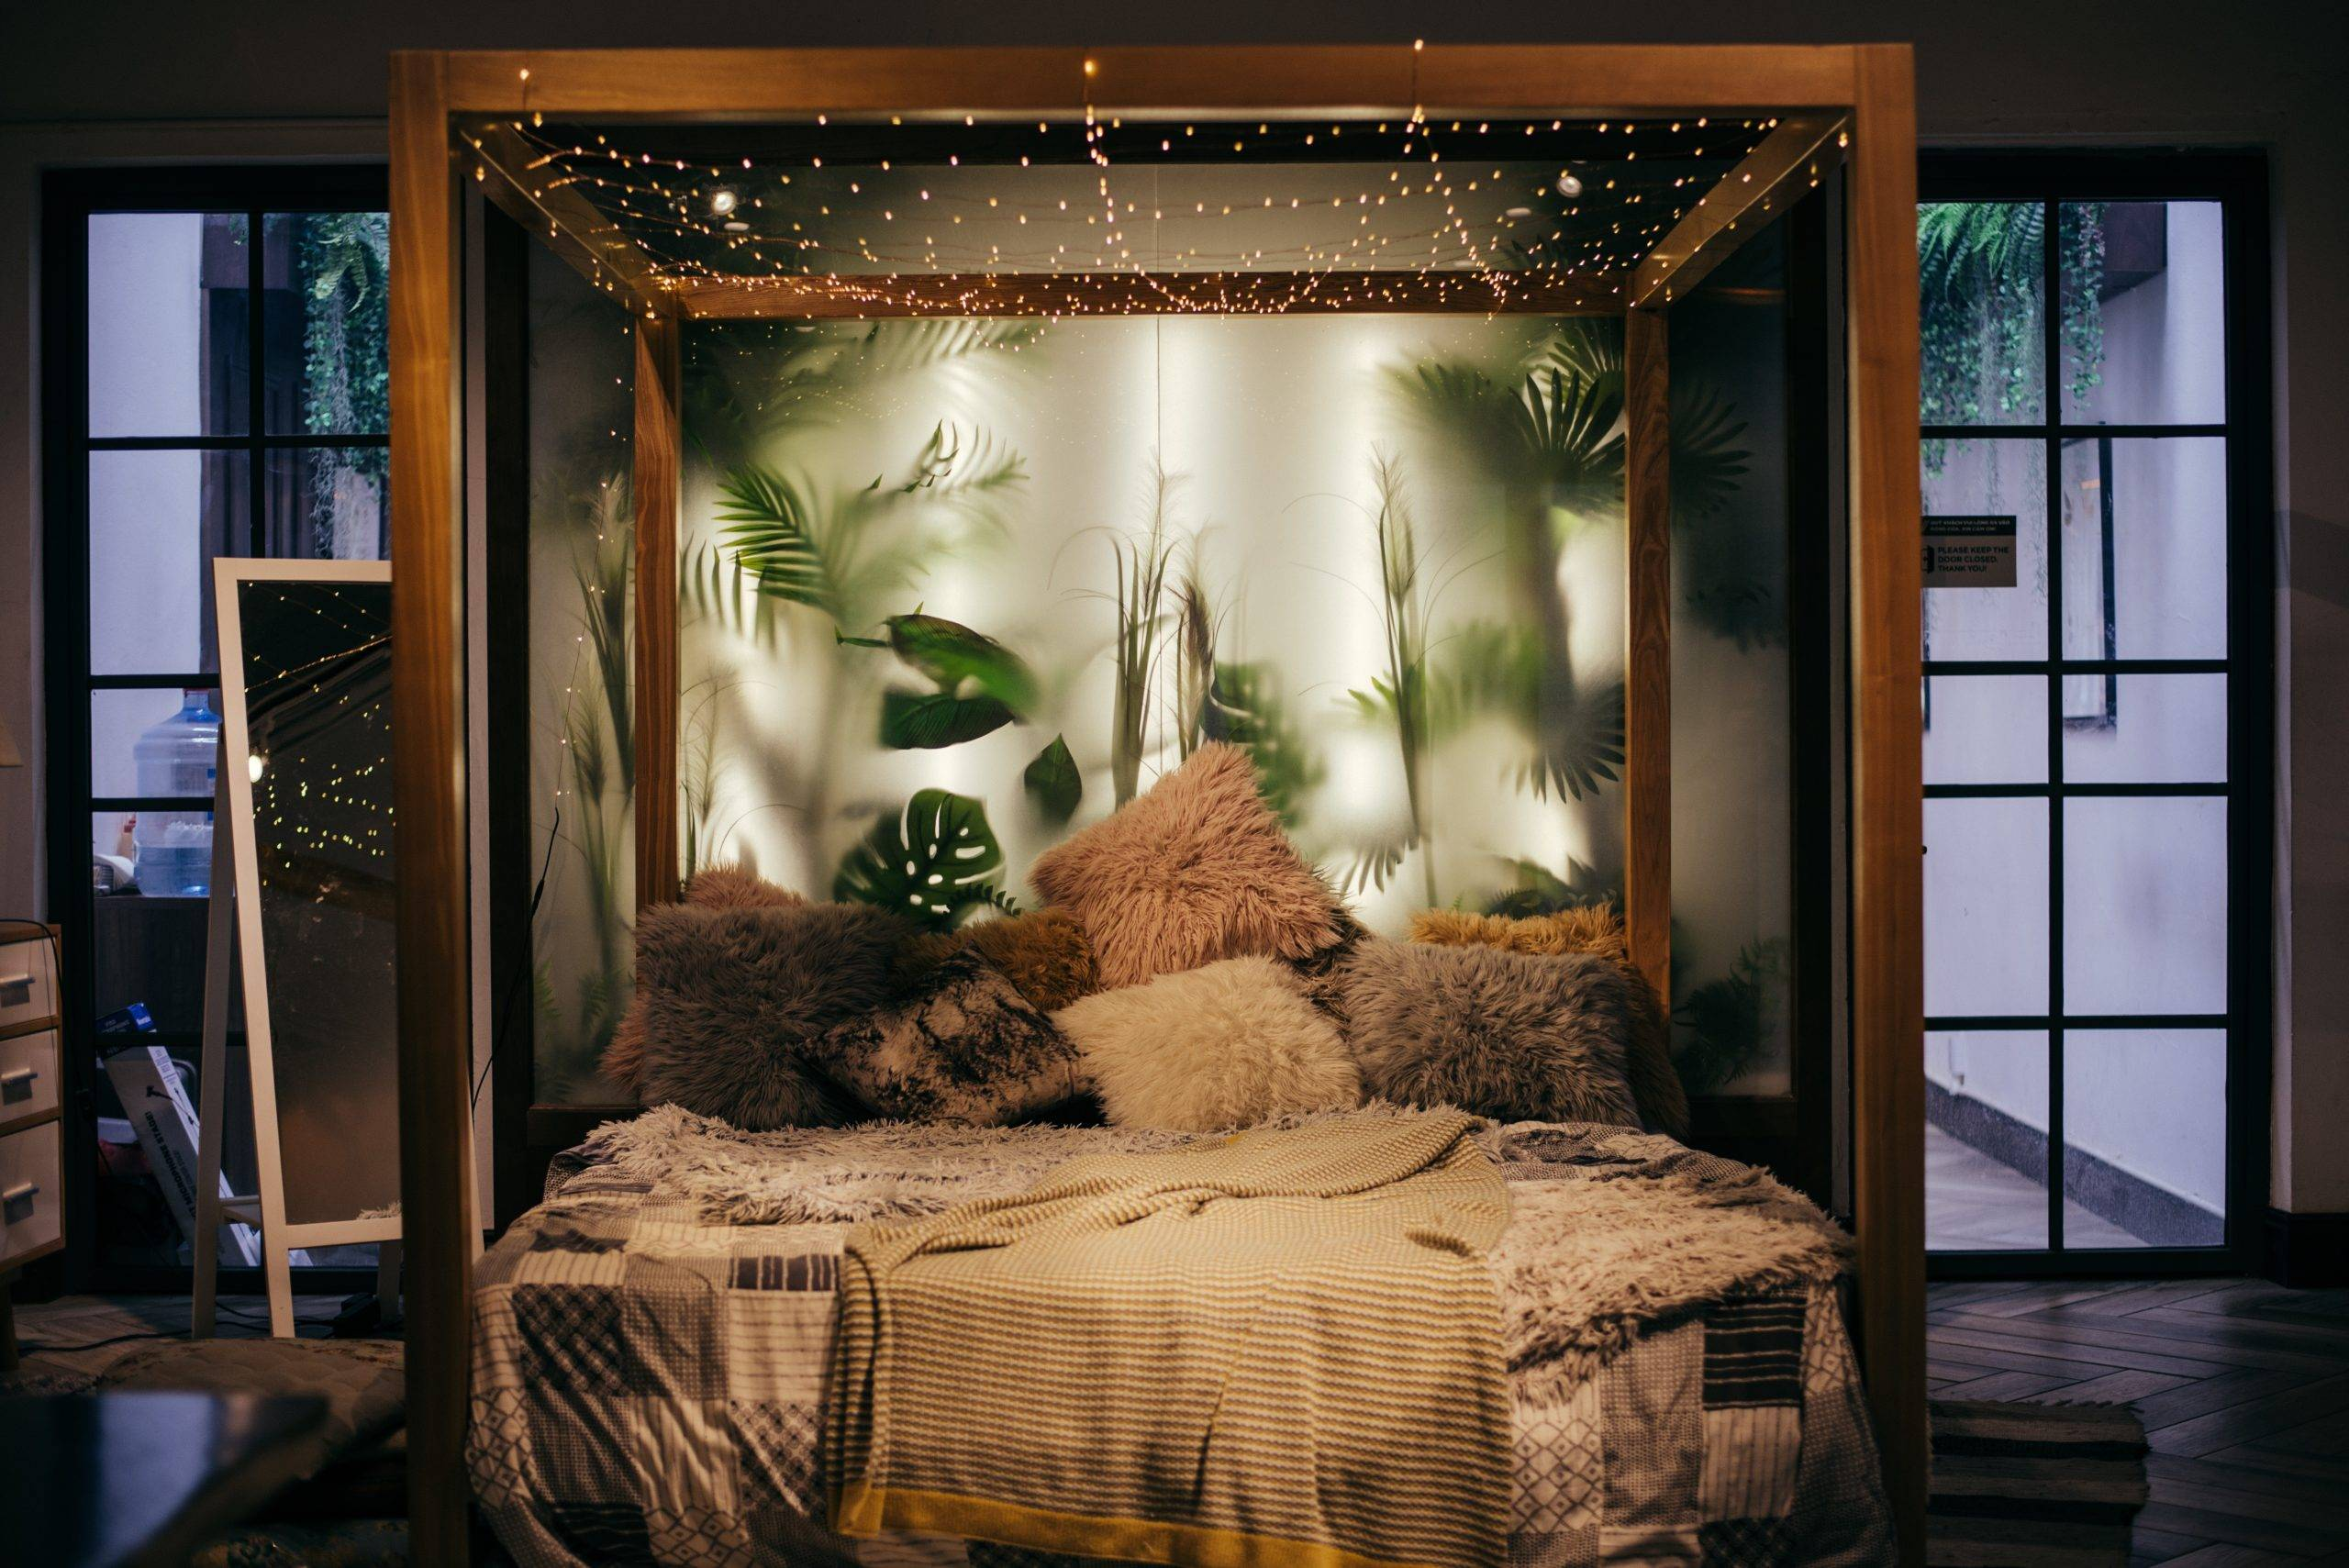 Bed frame with dangling mini lights